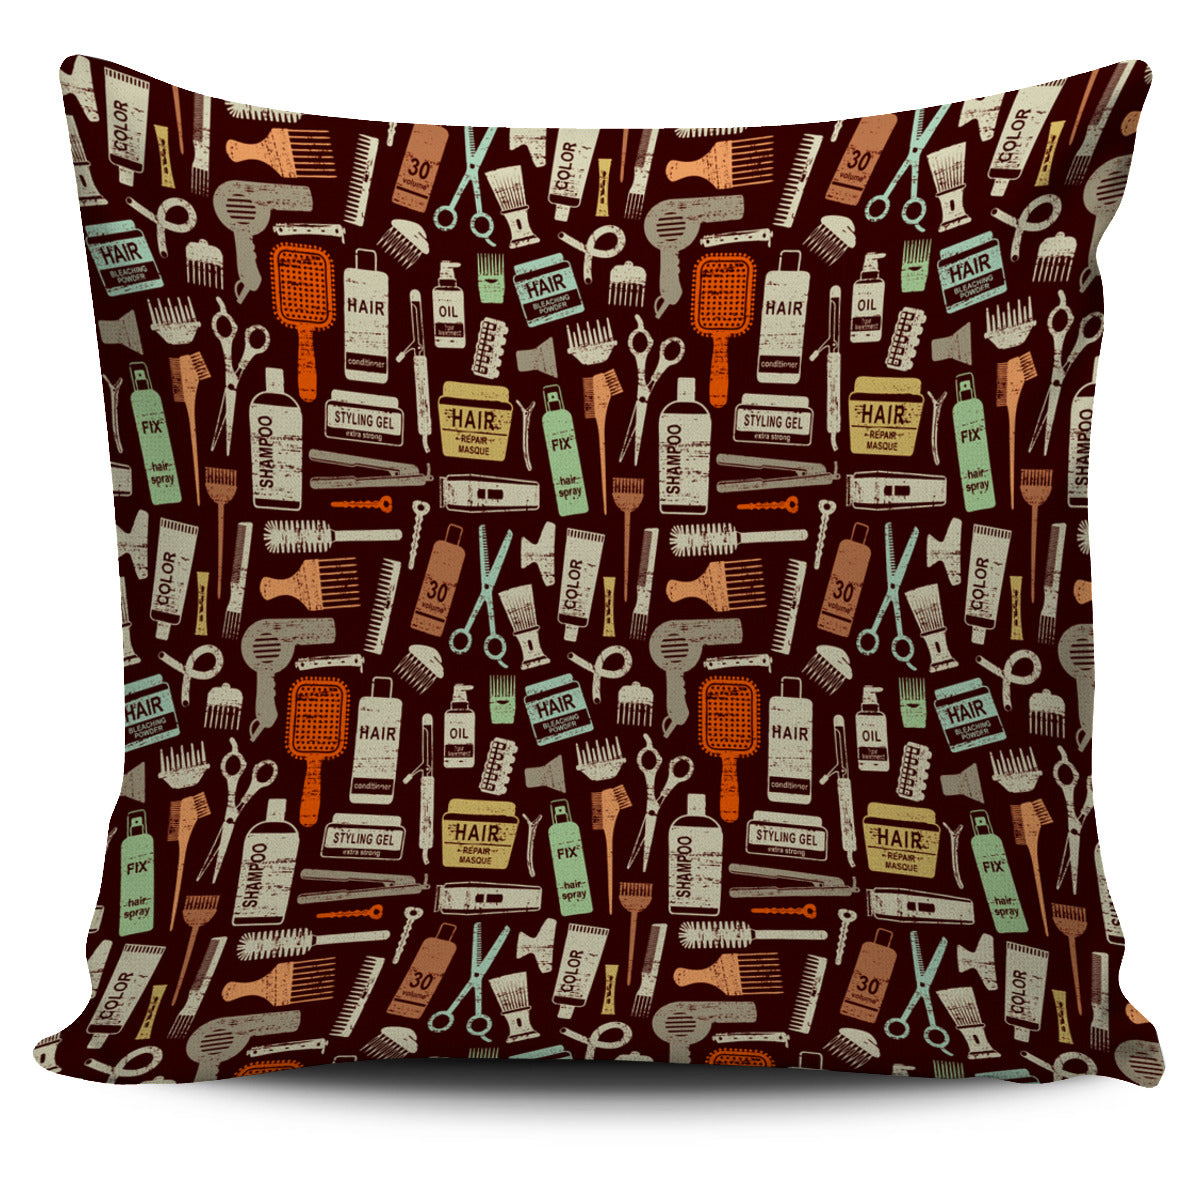 Hair Elements Pillow Cover